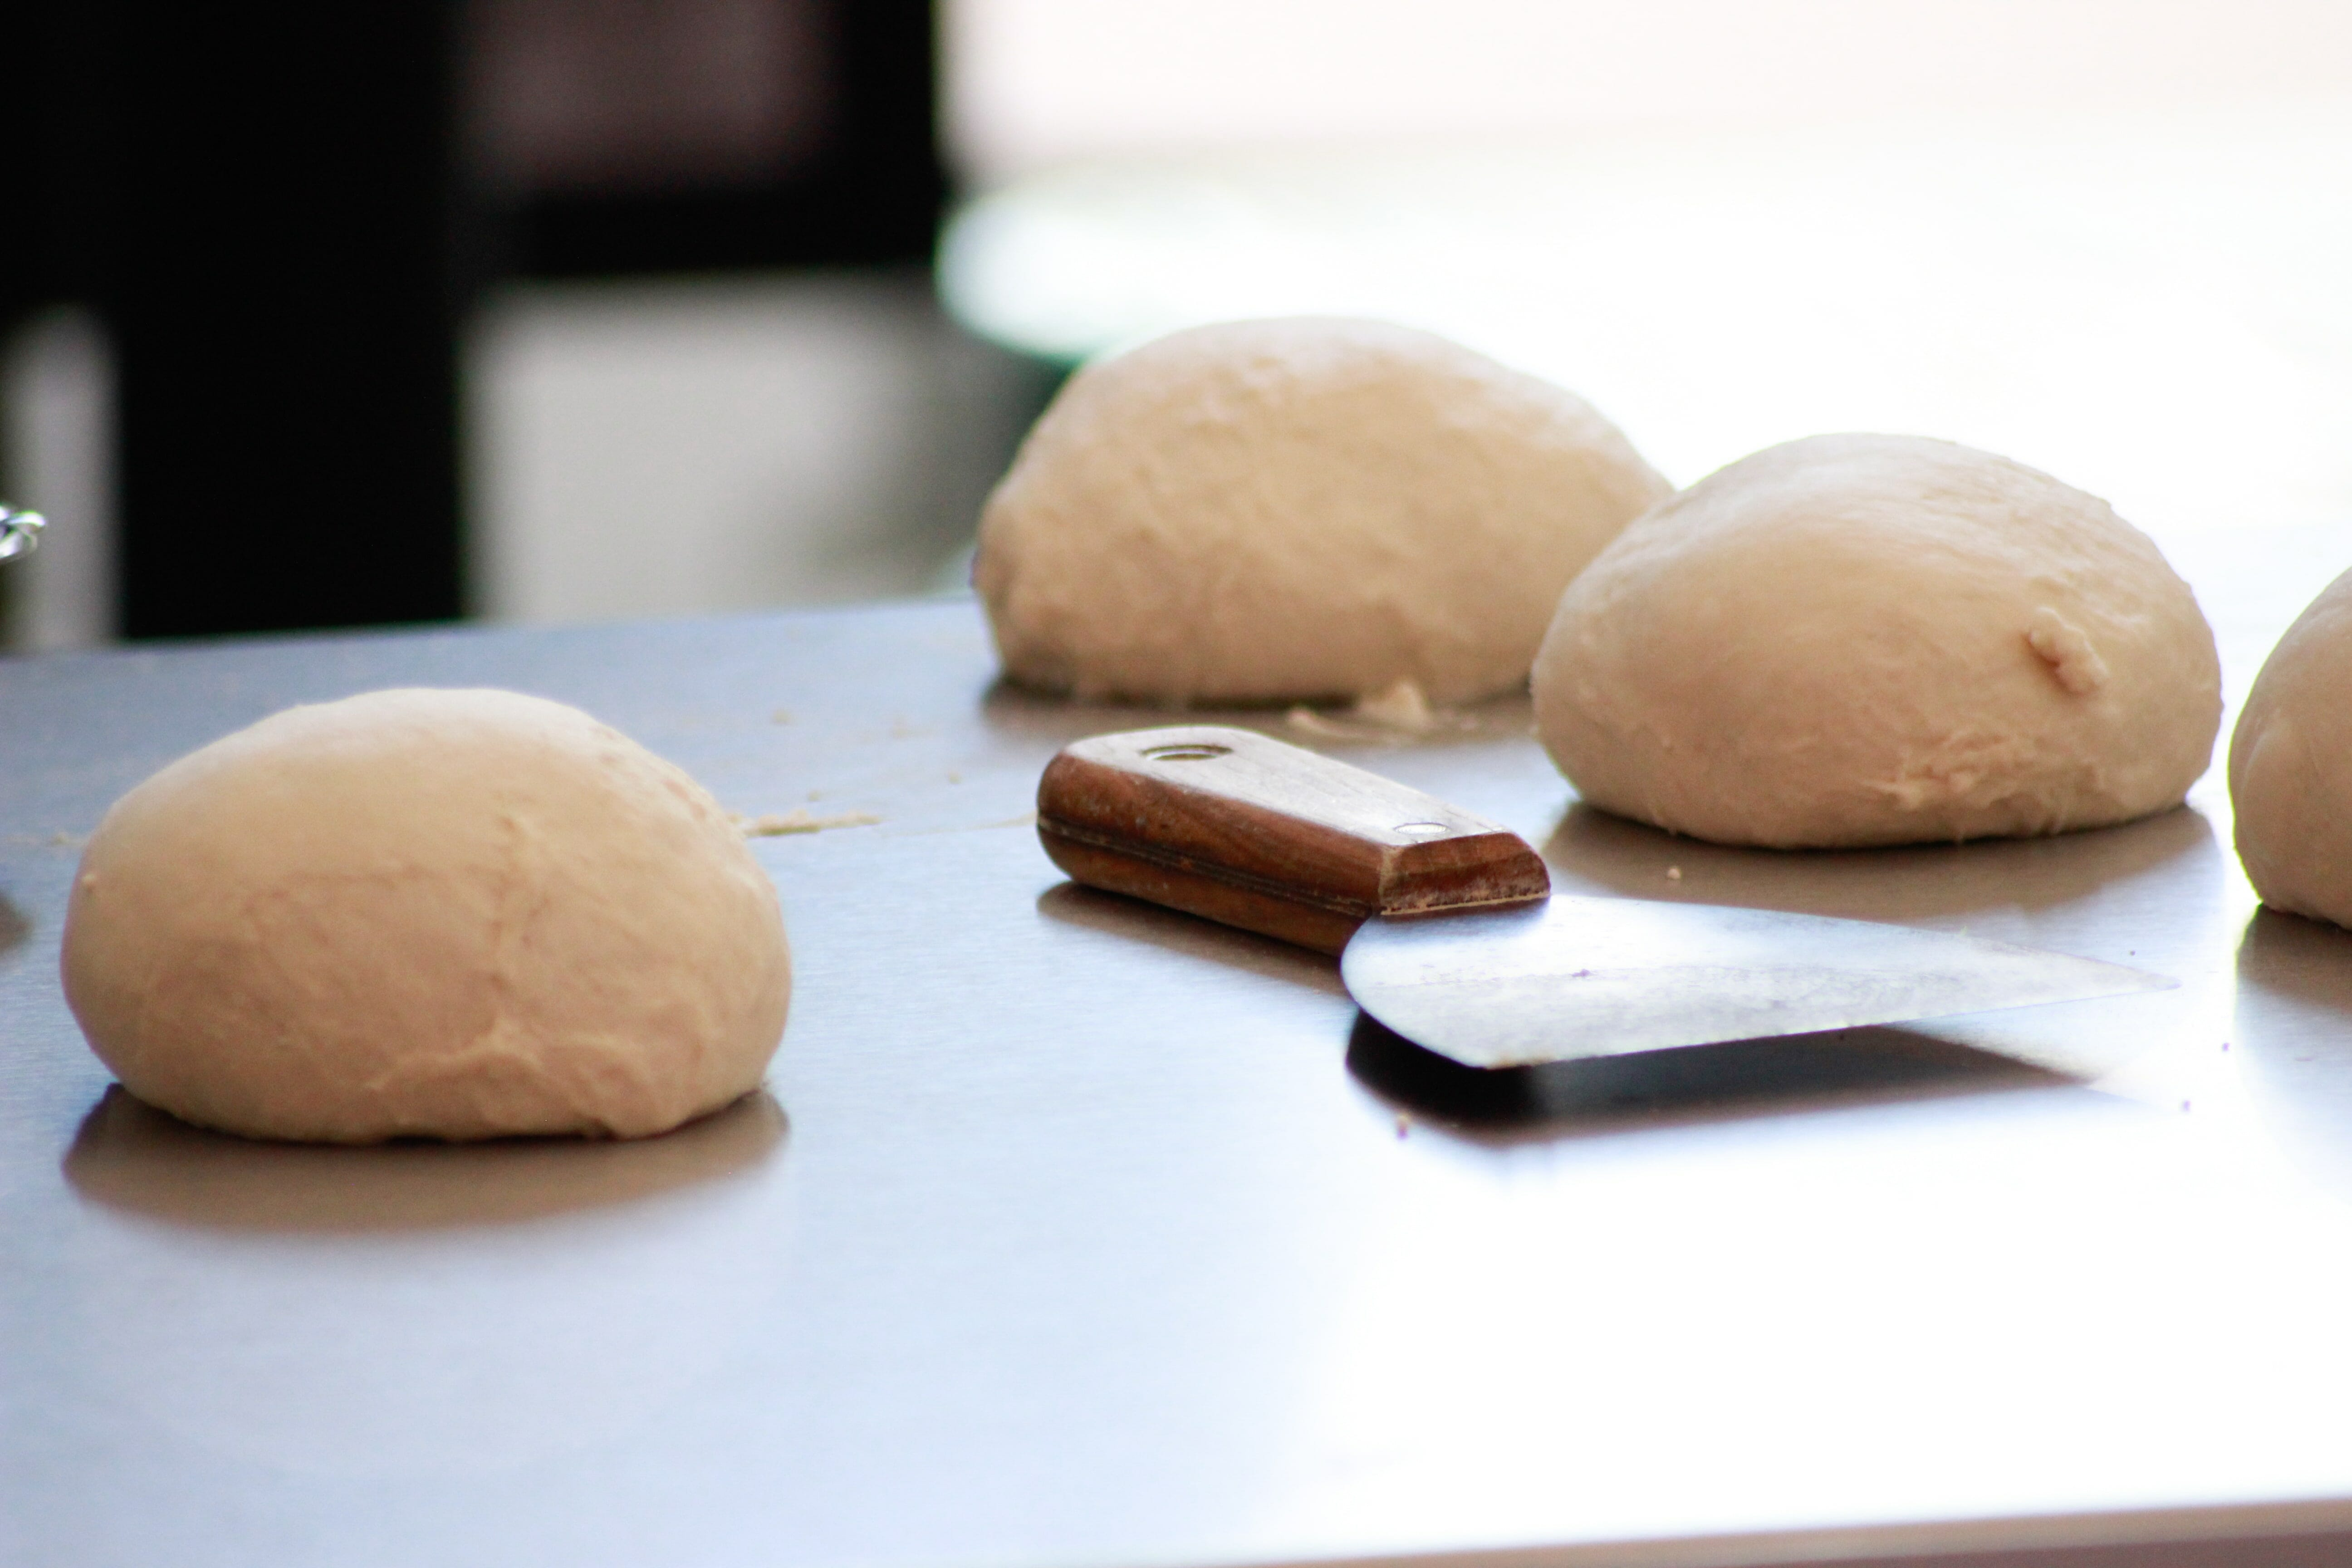 Dough Balls resting on a table next to dough cutter